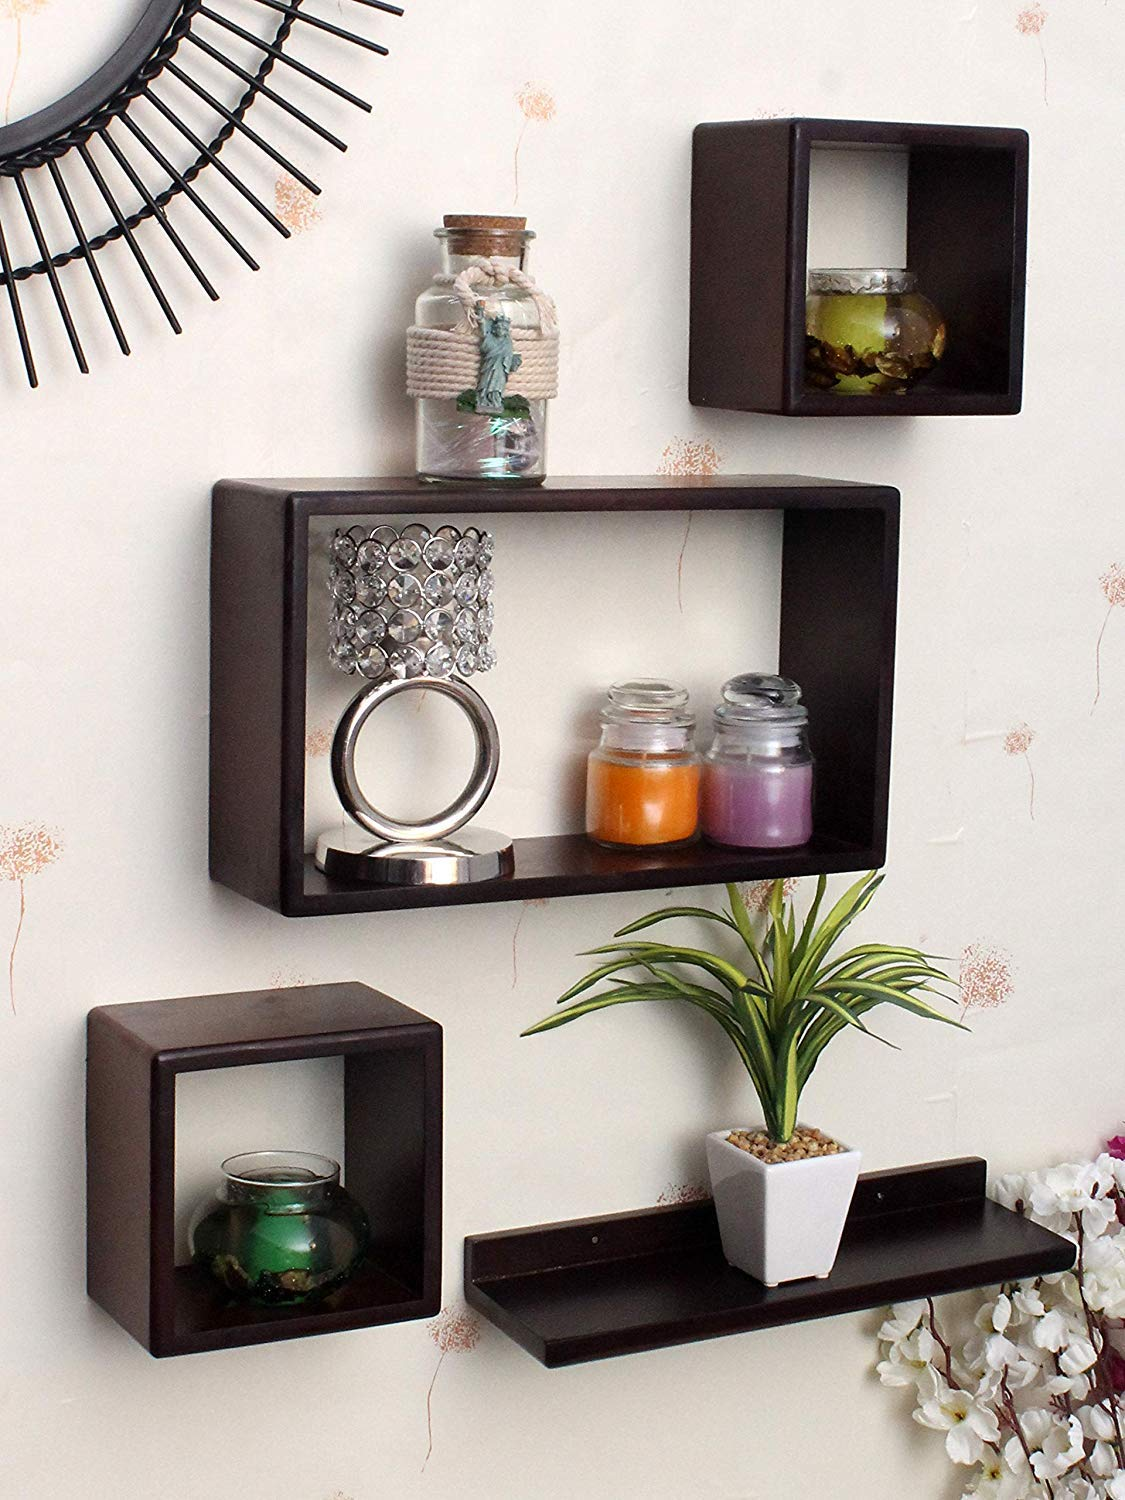 Sun Wood Art Mdf Cube And Rectangle Wall Shelf For Living Room And Bedroom And Home Decor Floating Shelves Brown Standard Size Set Of 4 Amazon In Home Kitchen